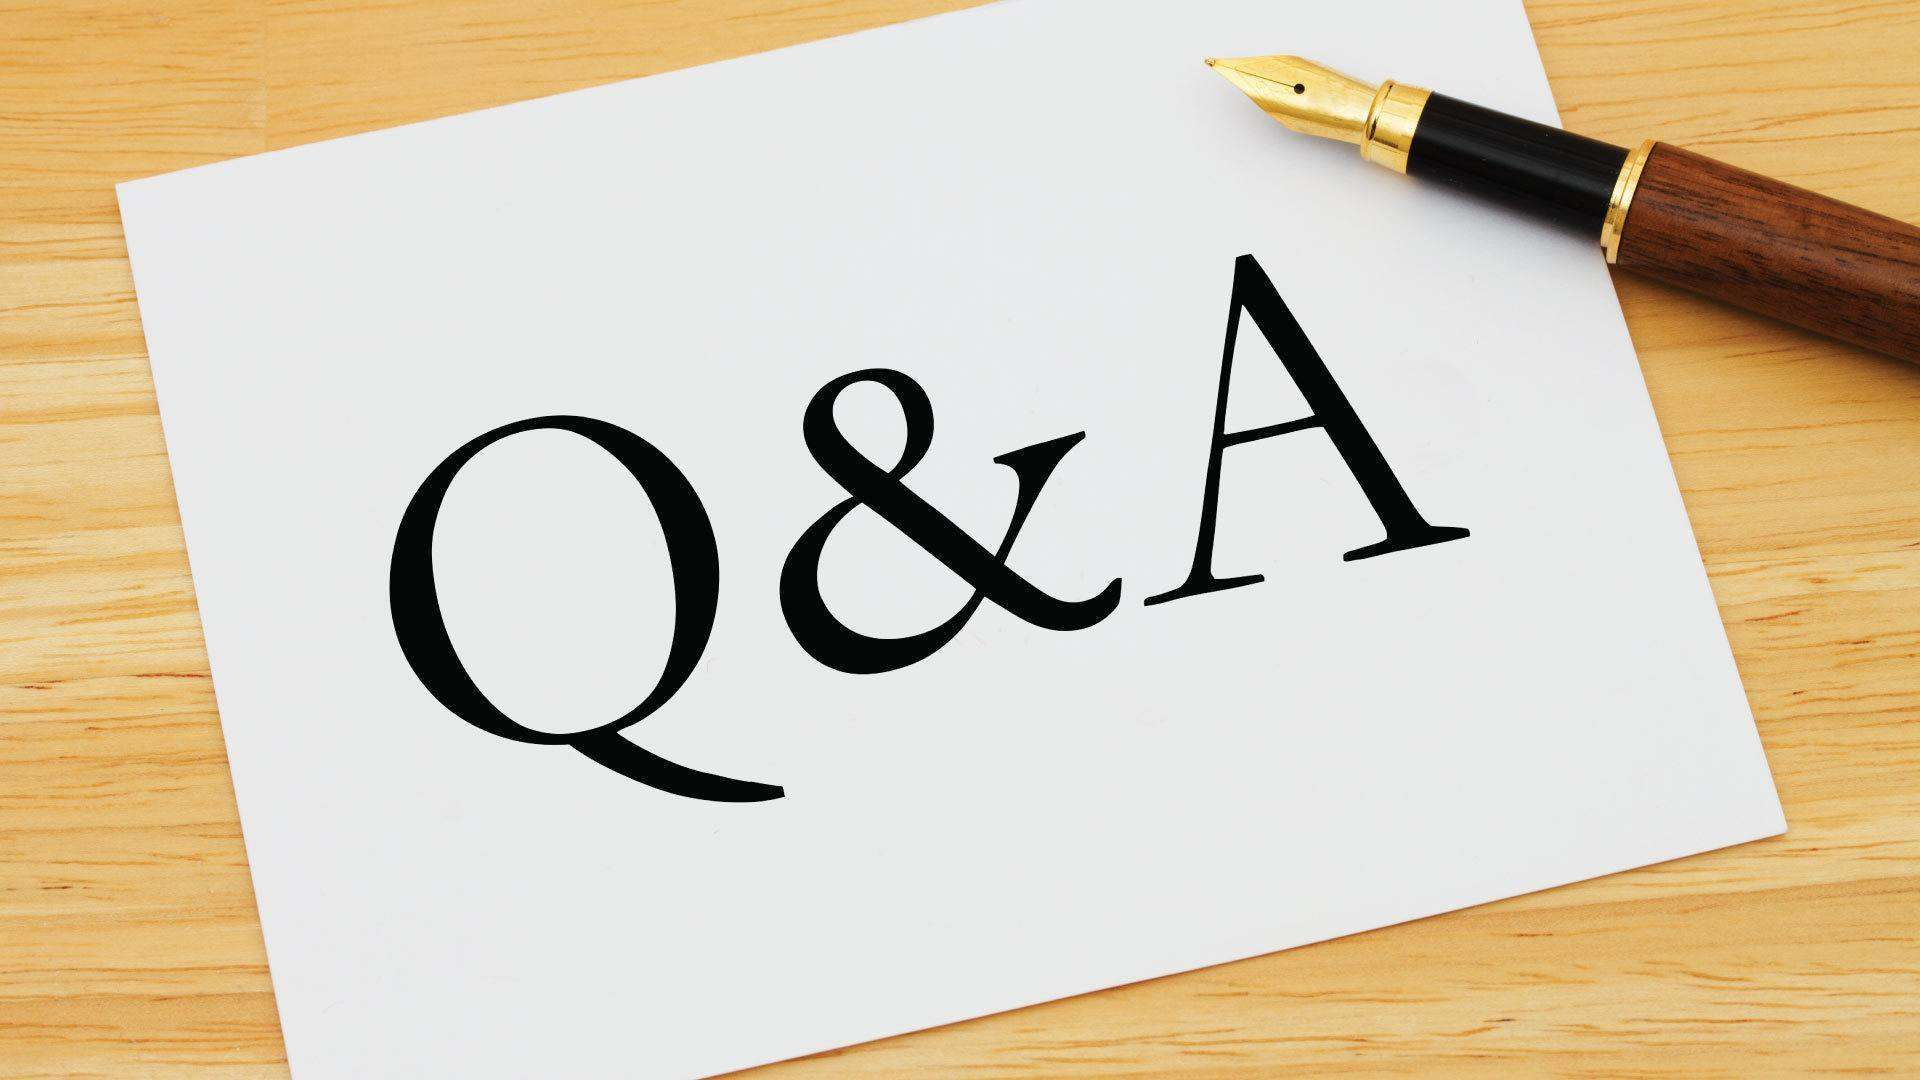 Top 20 Best Question And Answer Sites Ranked